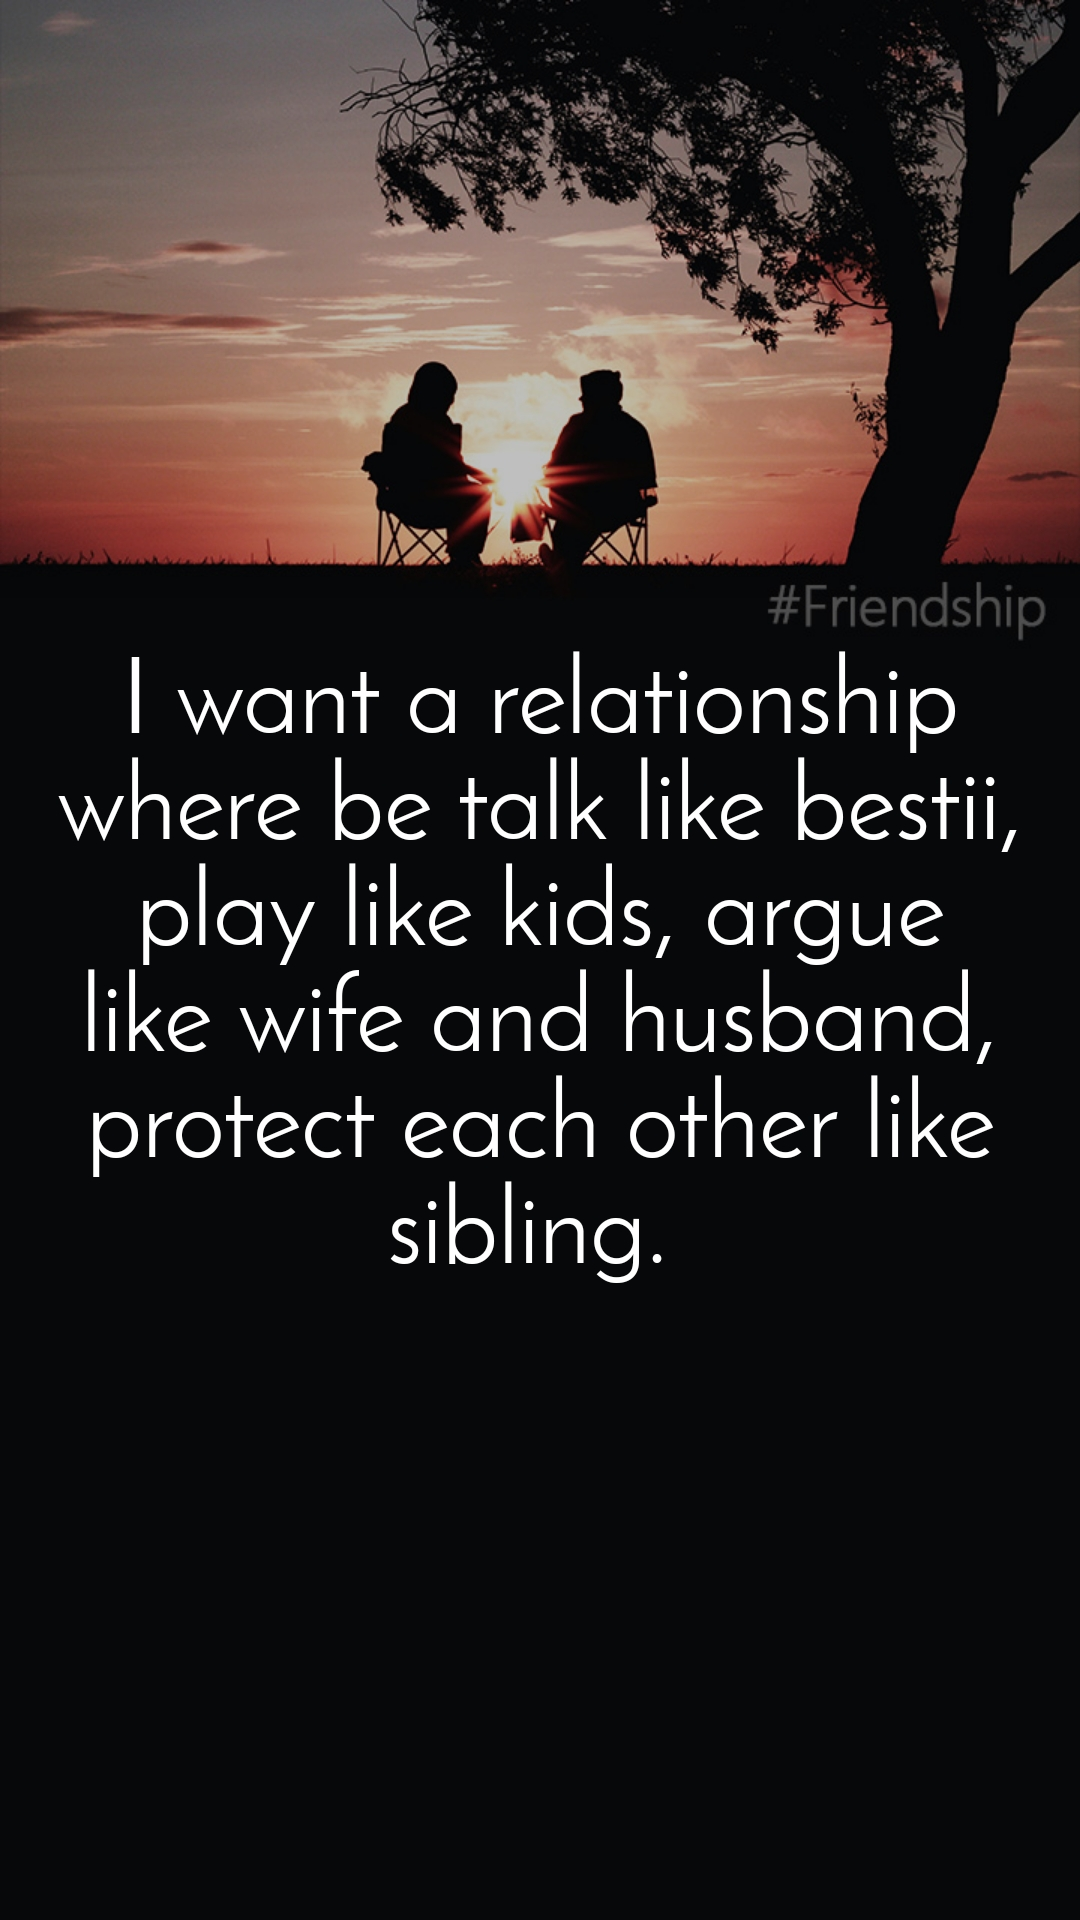 I want a relationship where be talk like bestii, play like kids, argue like wife and husband, protect each other like sibling.